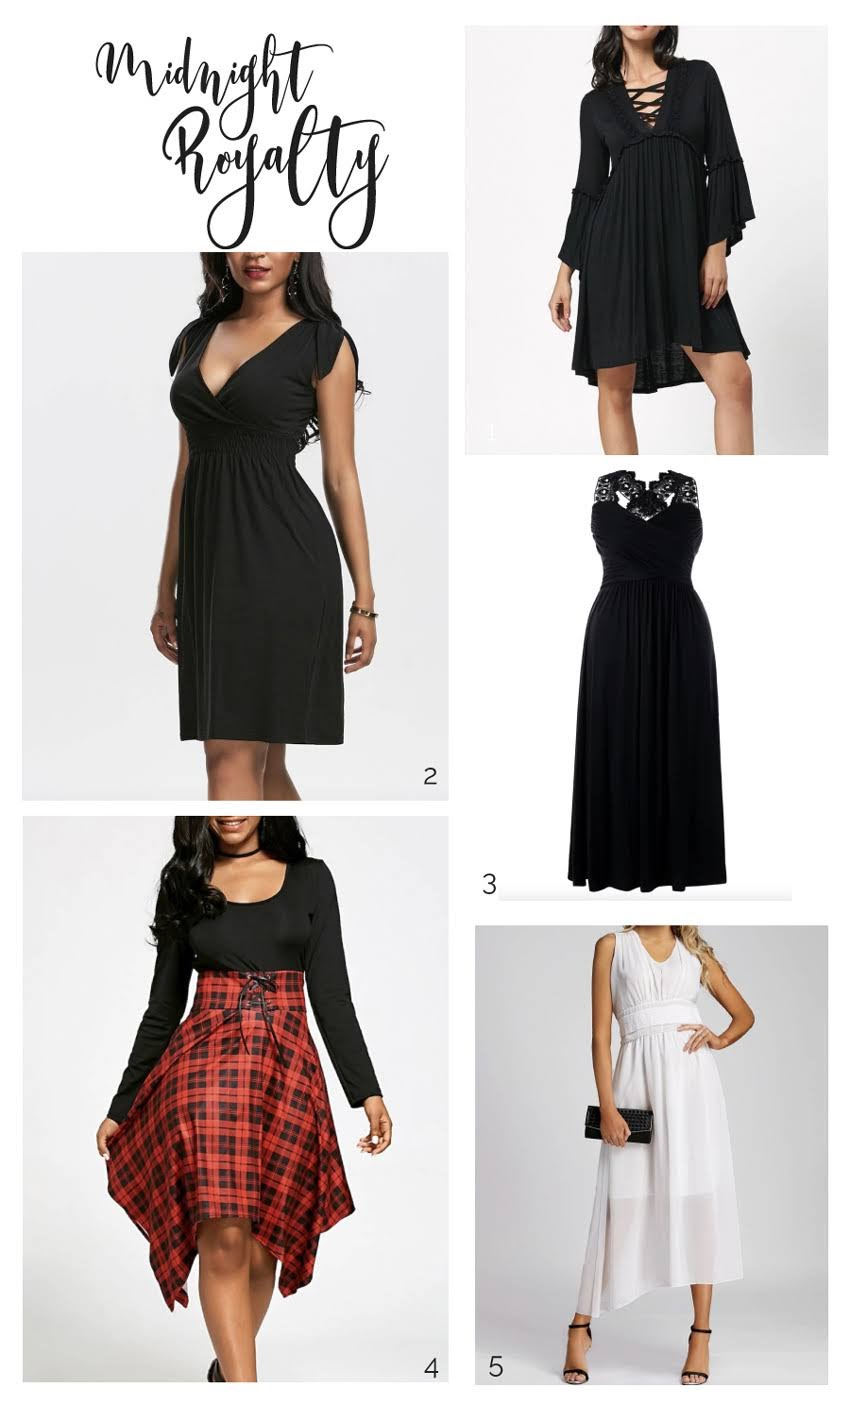 Empire Waist Dresses from Dresslily